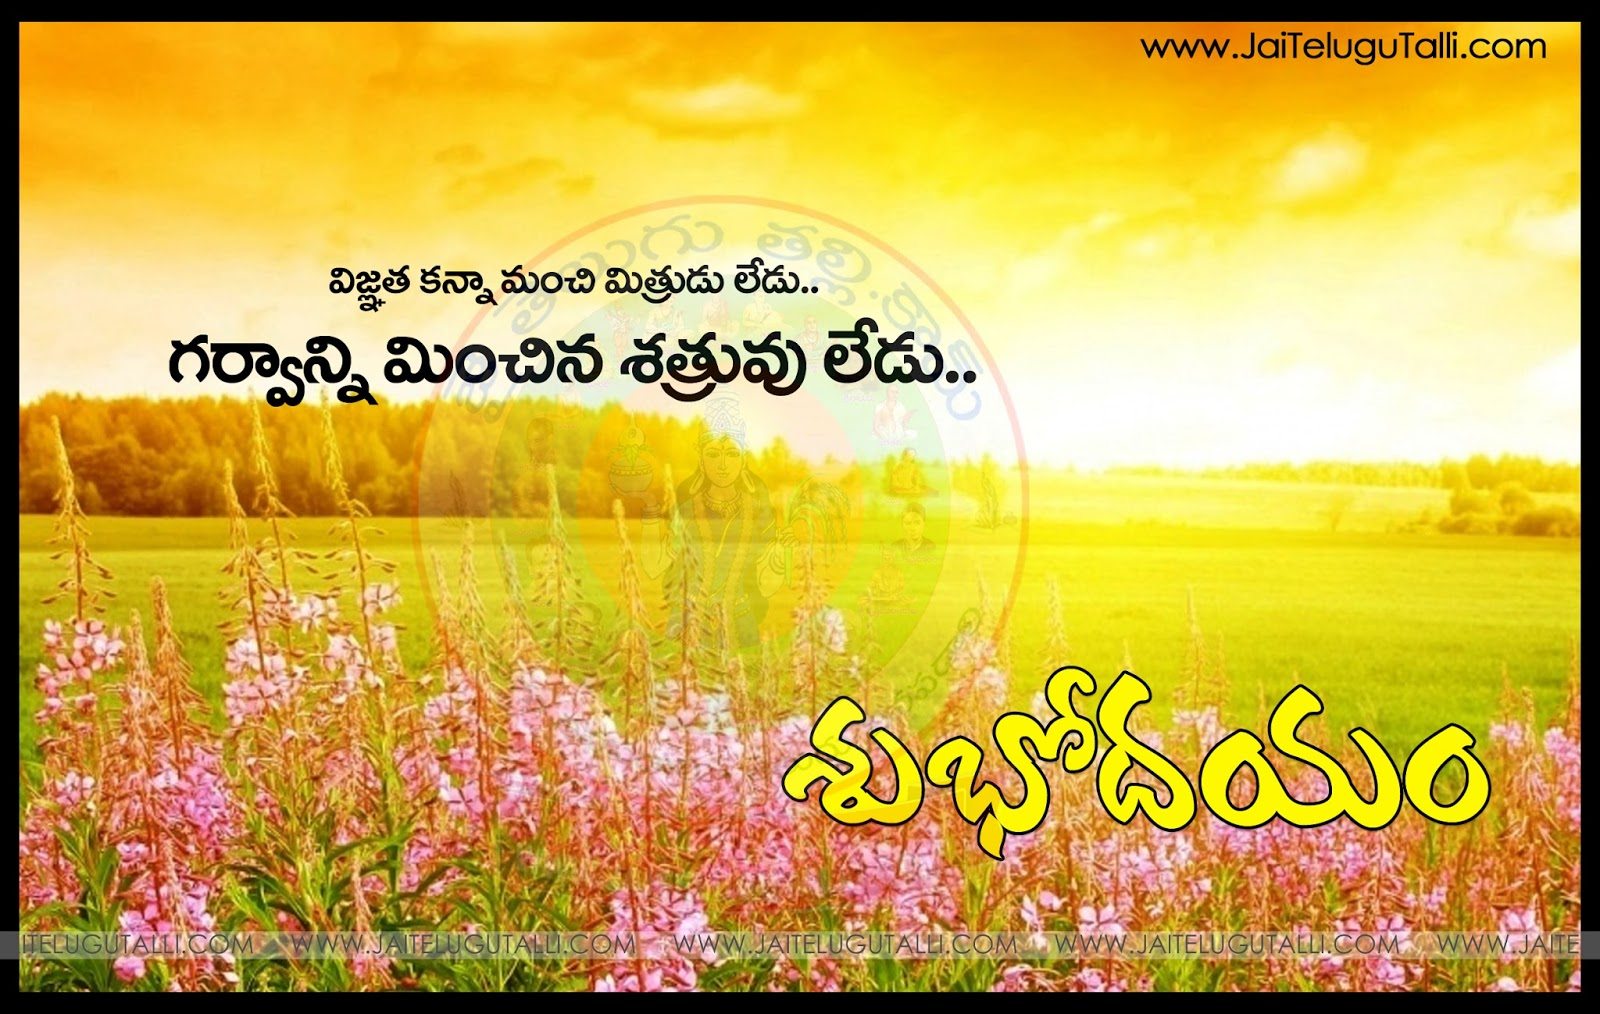 Subhodayam Images Famous Telugu Good Morning Quotes Pictures